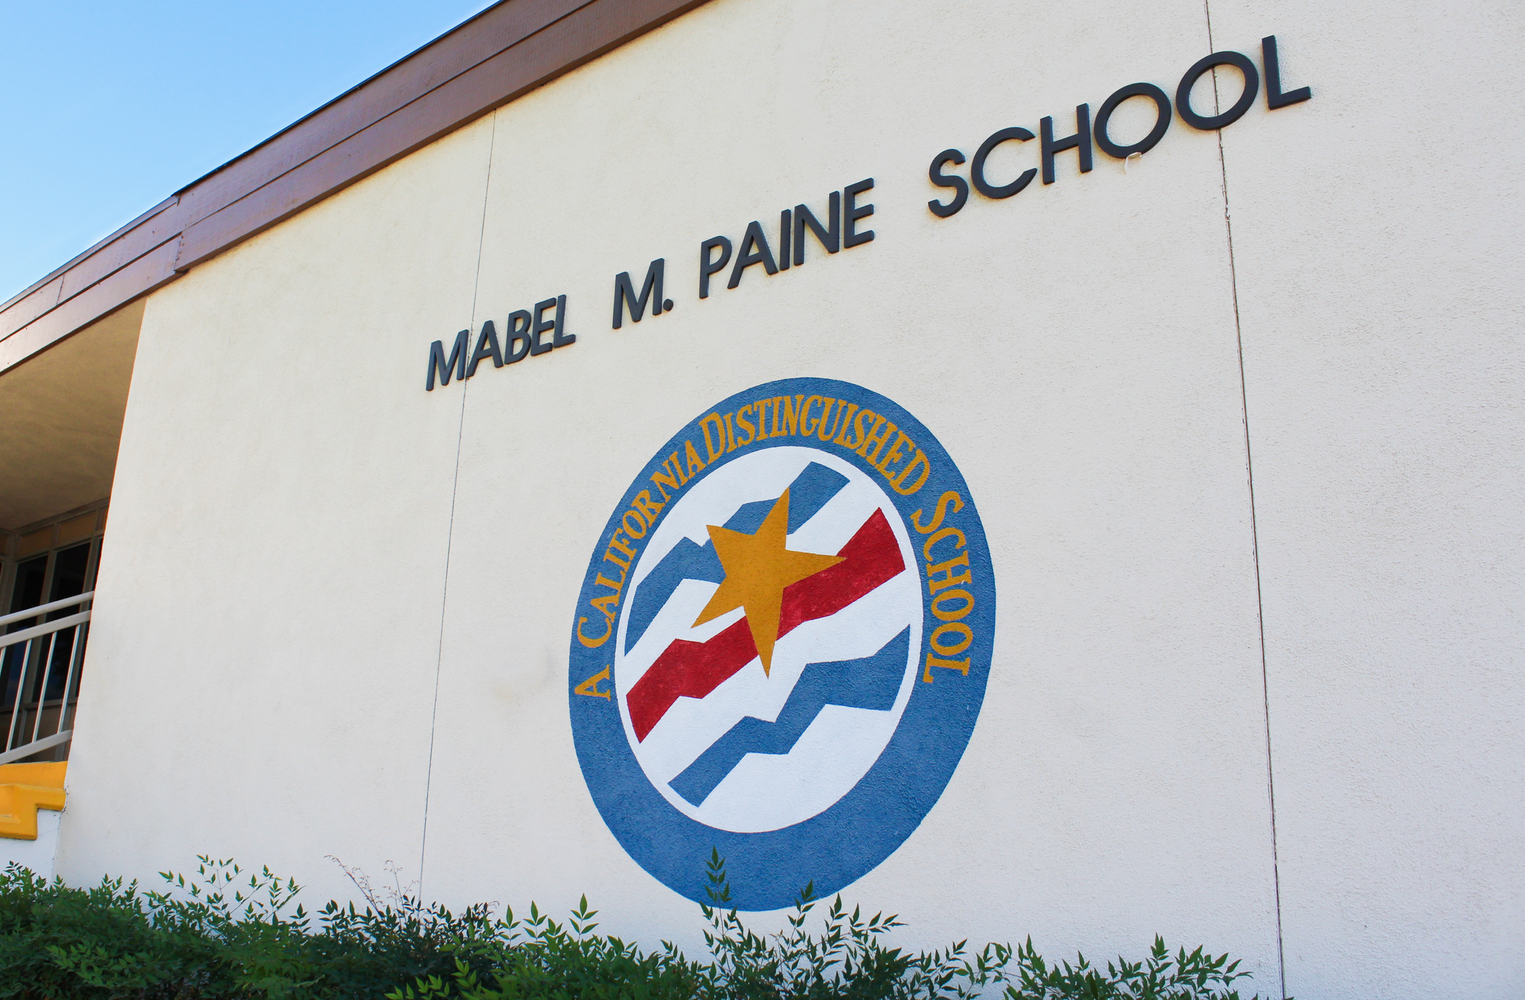 The front of Mabel M. Paine Elementary School.